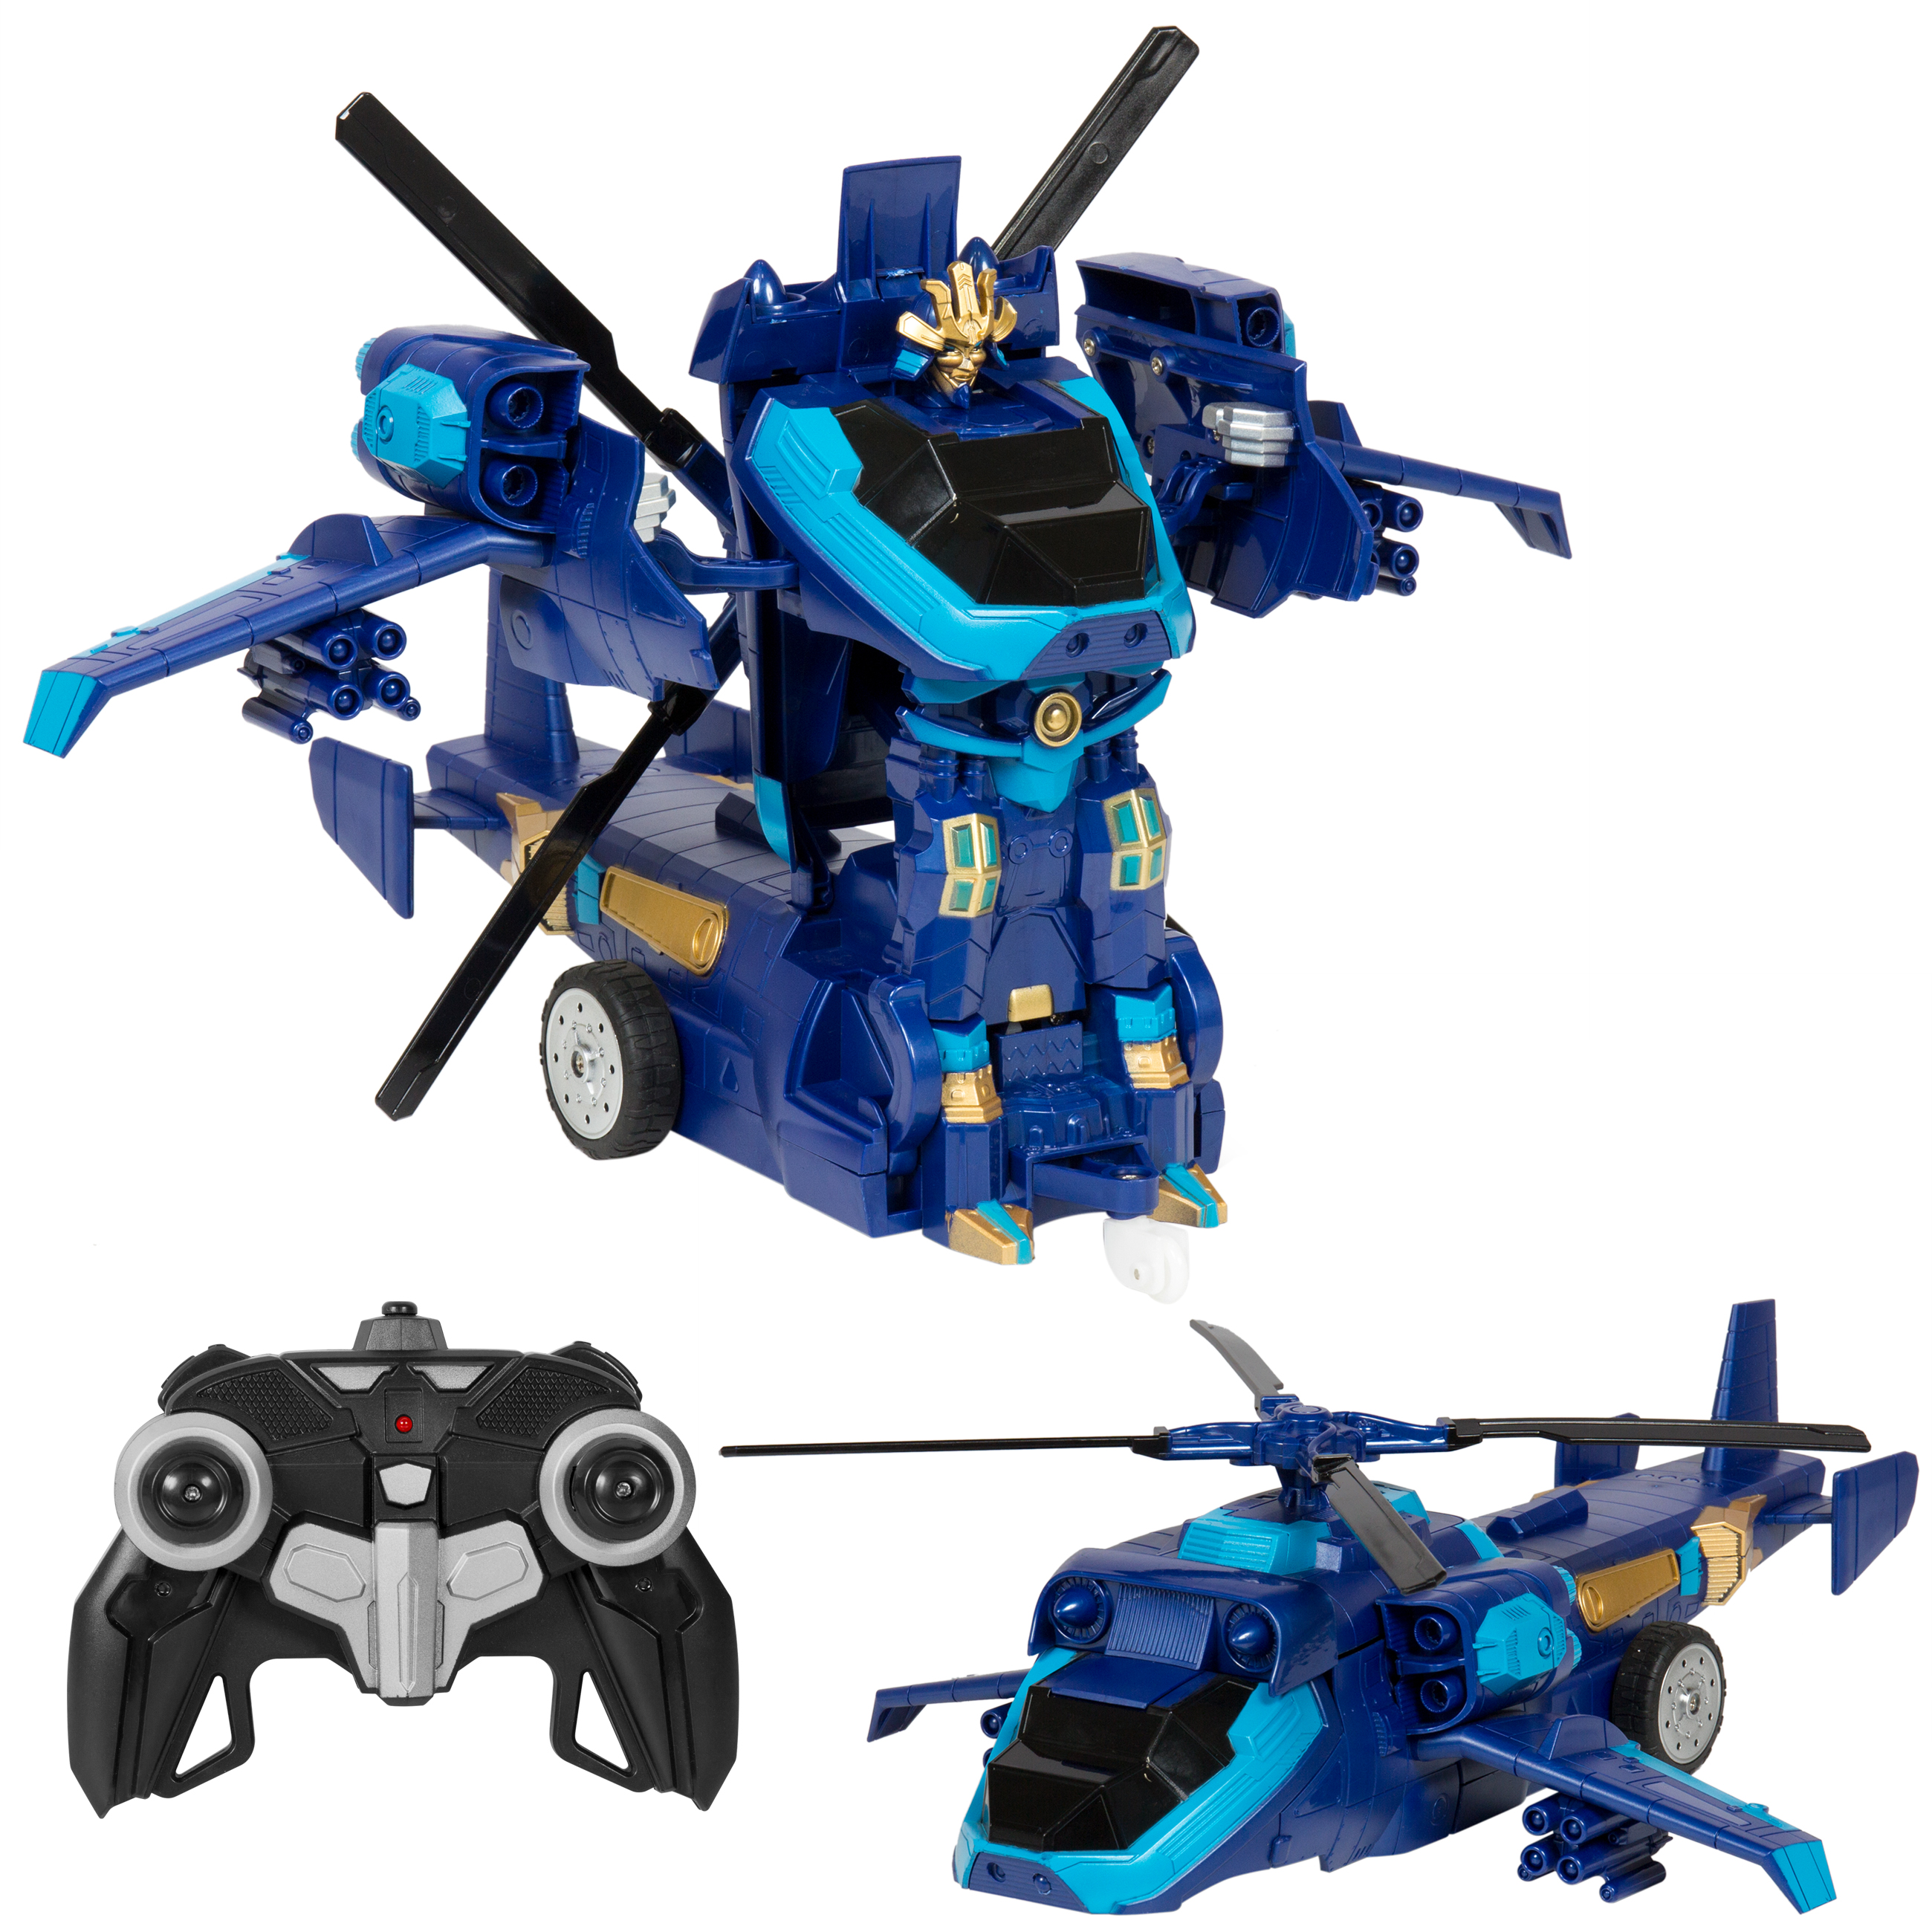 Best Choice Products Toy Transformer Tank Helicopter Remote Control RC Robot w/ USB Charger - Blue